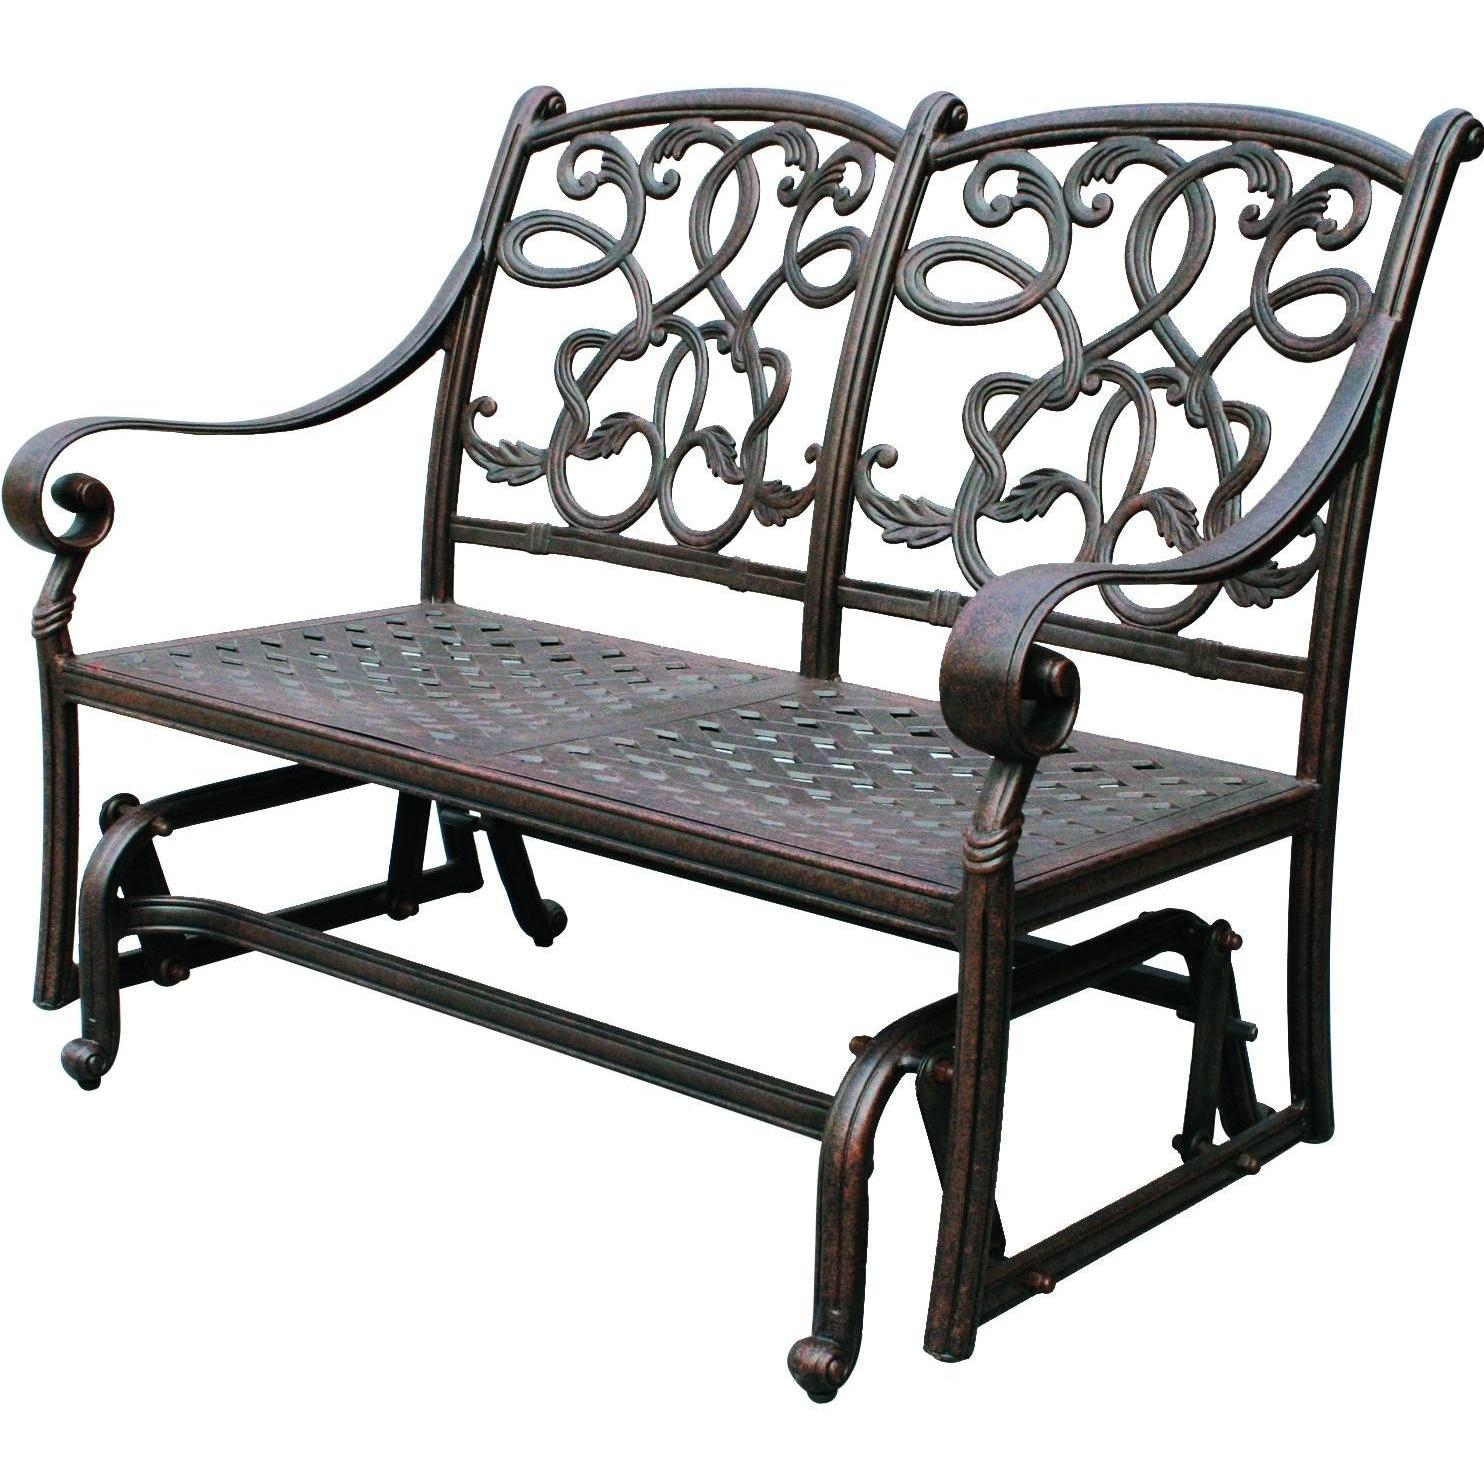 Darlee Santa Monica Cast Aluminum Patio Loveseat Glider For 1 Person Antique Black Steel Outdoor Gliders (View 6 of 25)